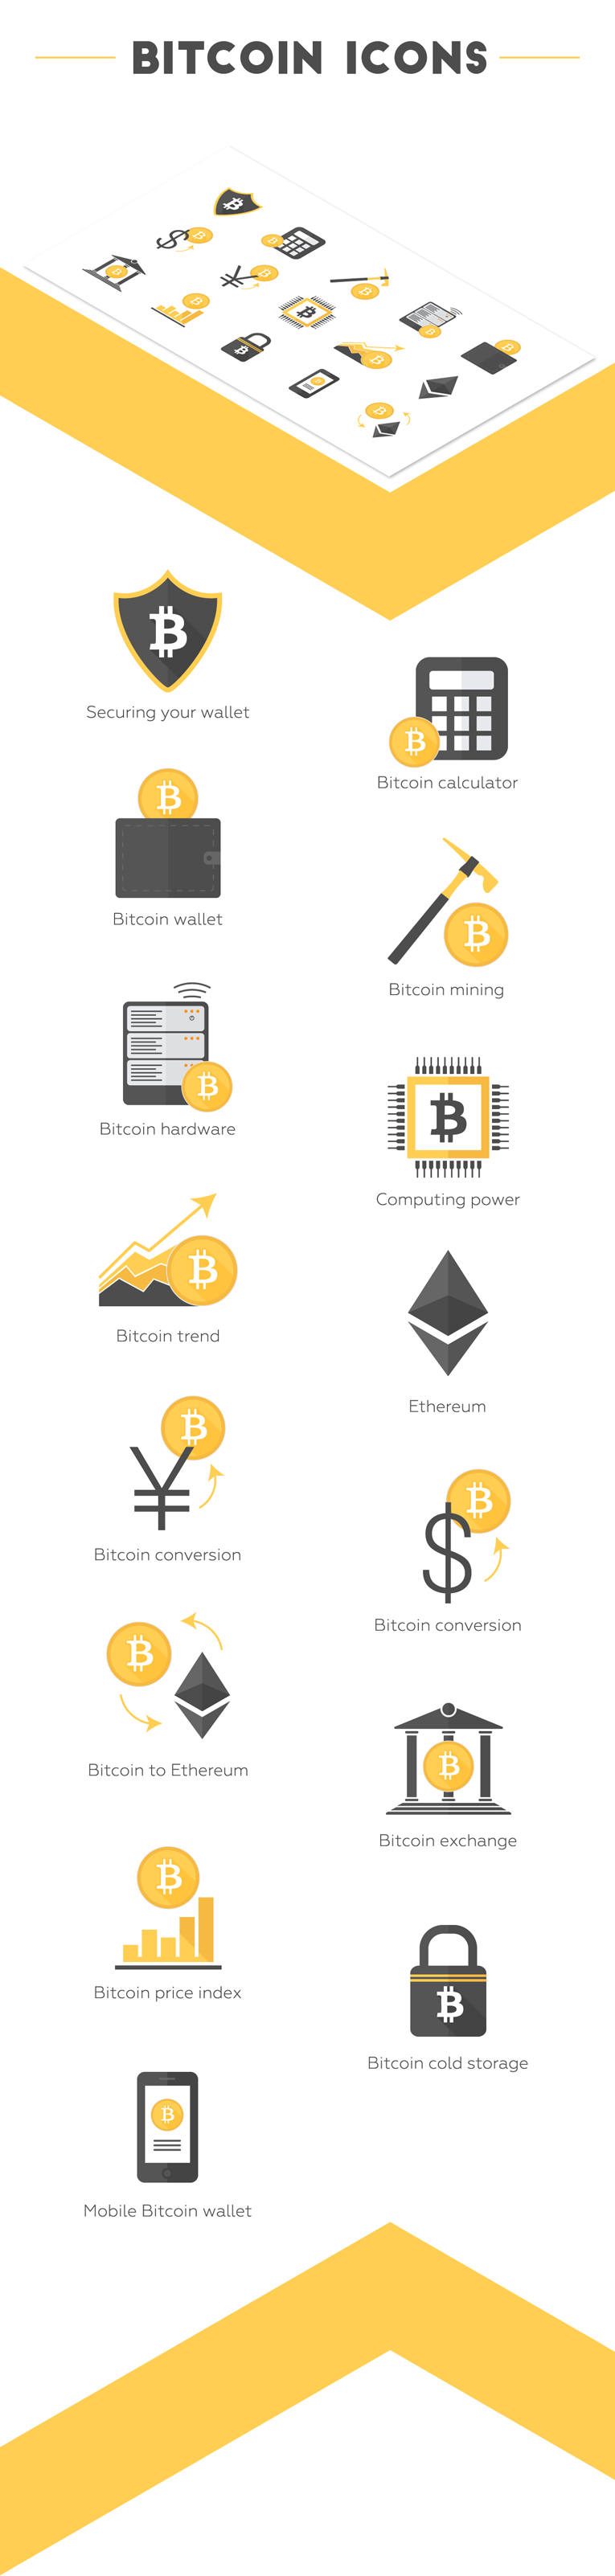 Bitcoins icons